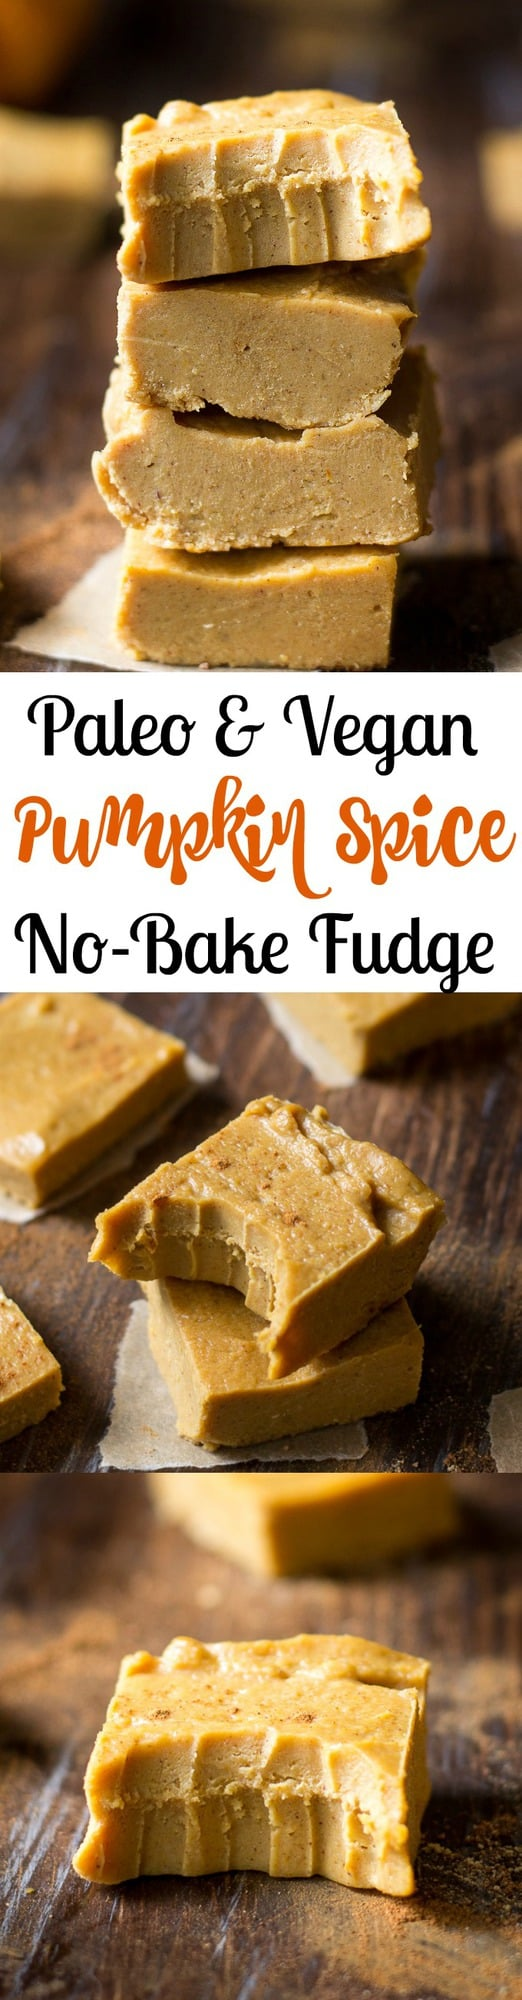 easy-no-bake-pumpkin-spice-fudge-paleo-vegan-refined-sugar-free-rich-creamy-and-perfectly-sweet